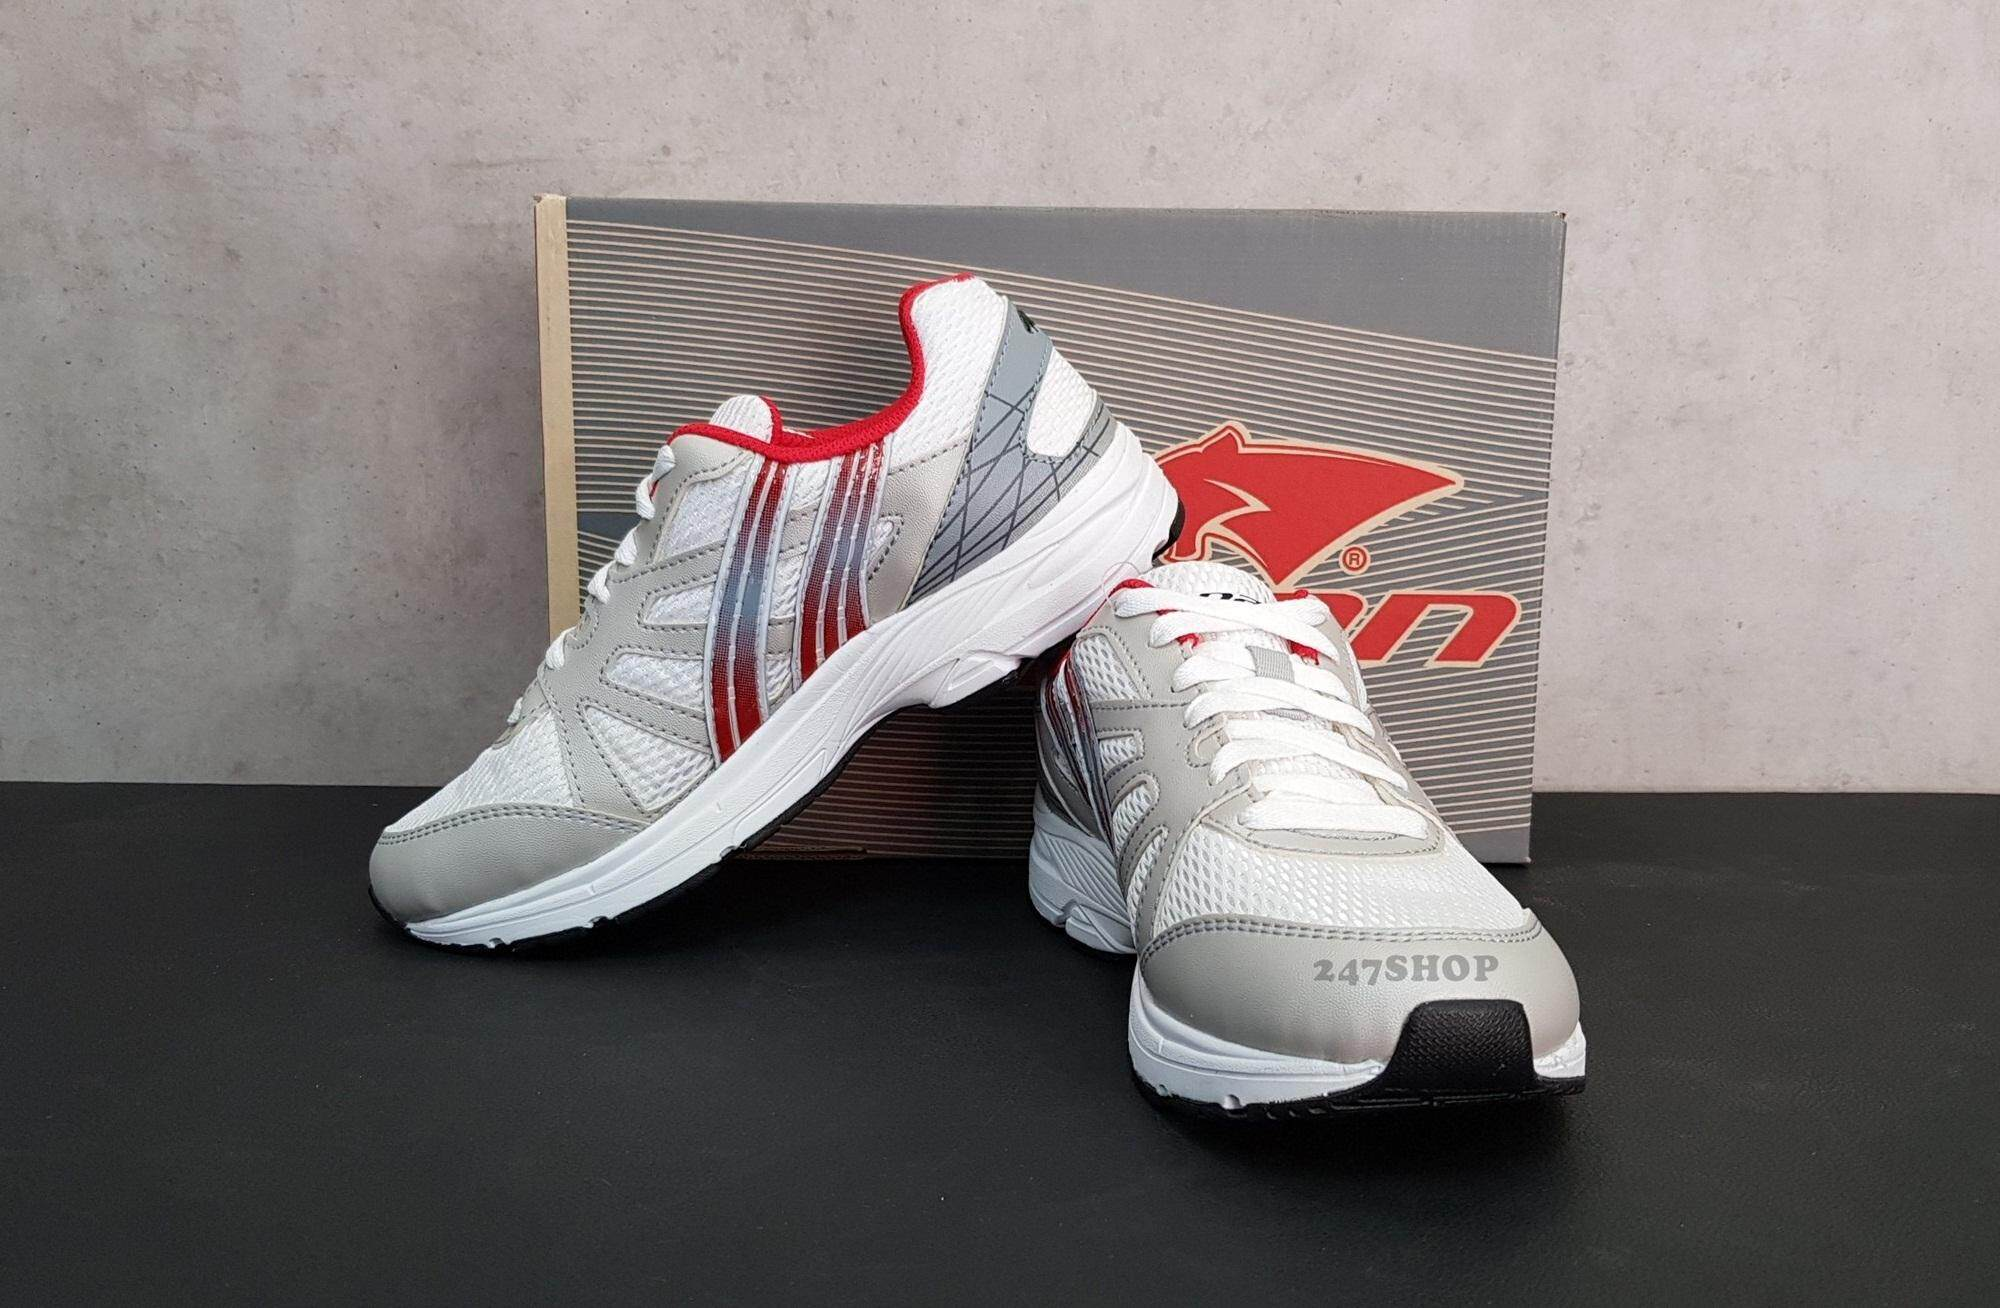 PAN RUNDAY 5 SILVER/RED รองเท้าวิ่งแพน PF-16M1-SW รองเท้าผ้าใบ